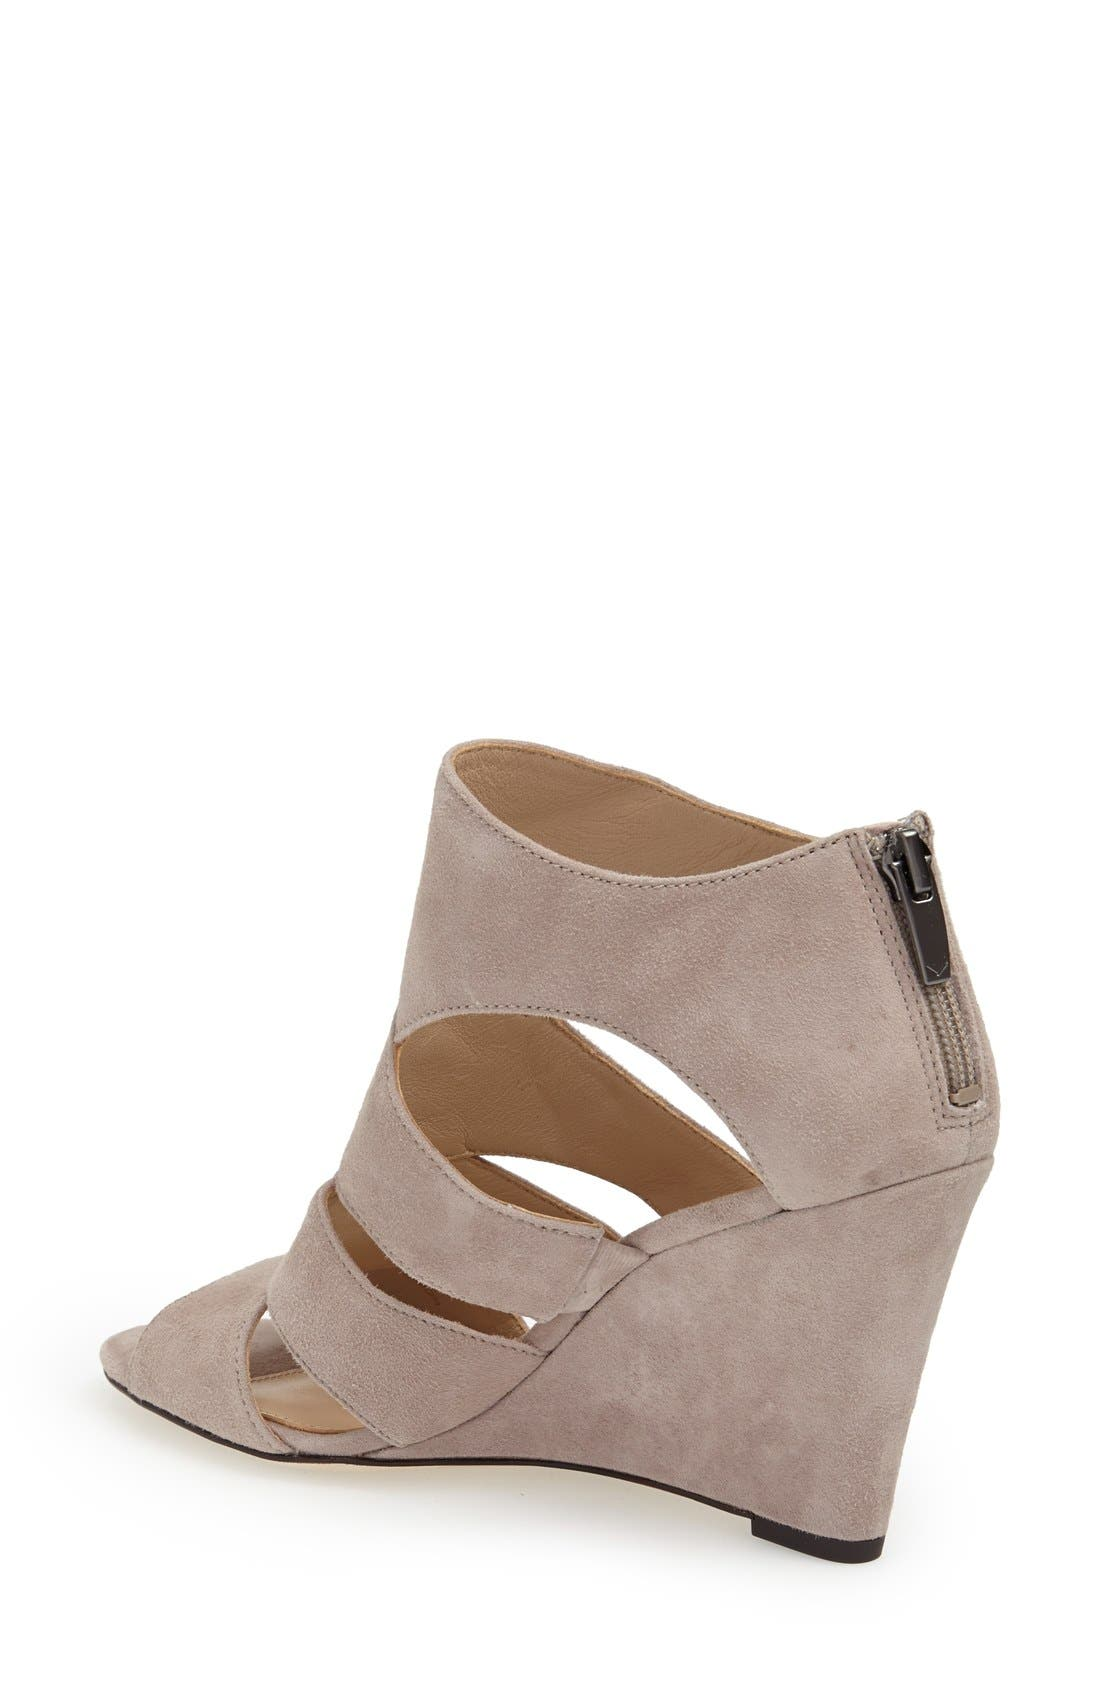 Alternate Image 2  - Via Spiga 'Fion' Wedge Sandal (Women)